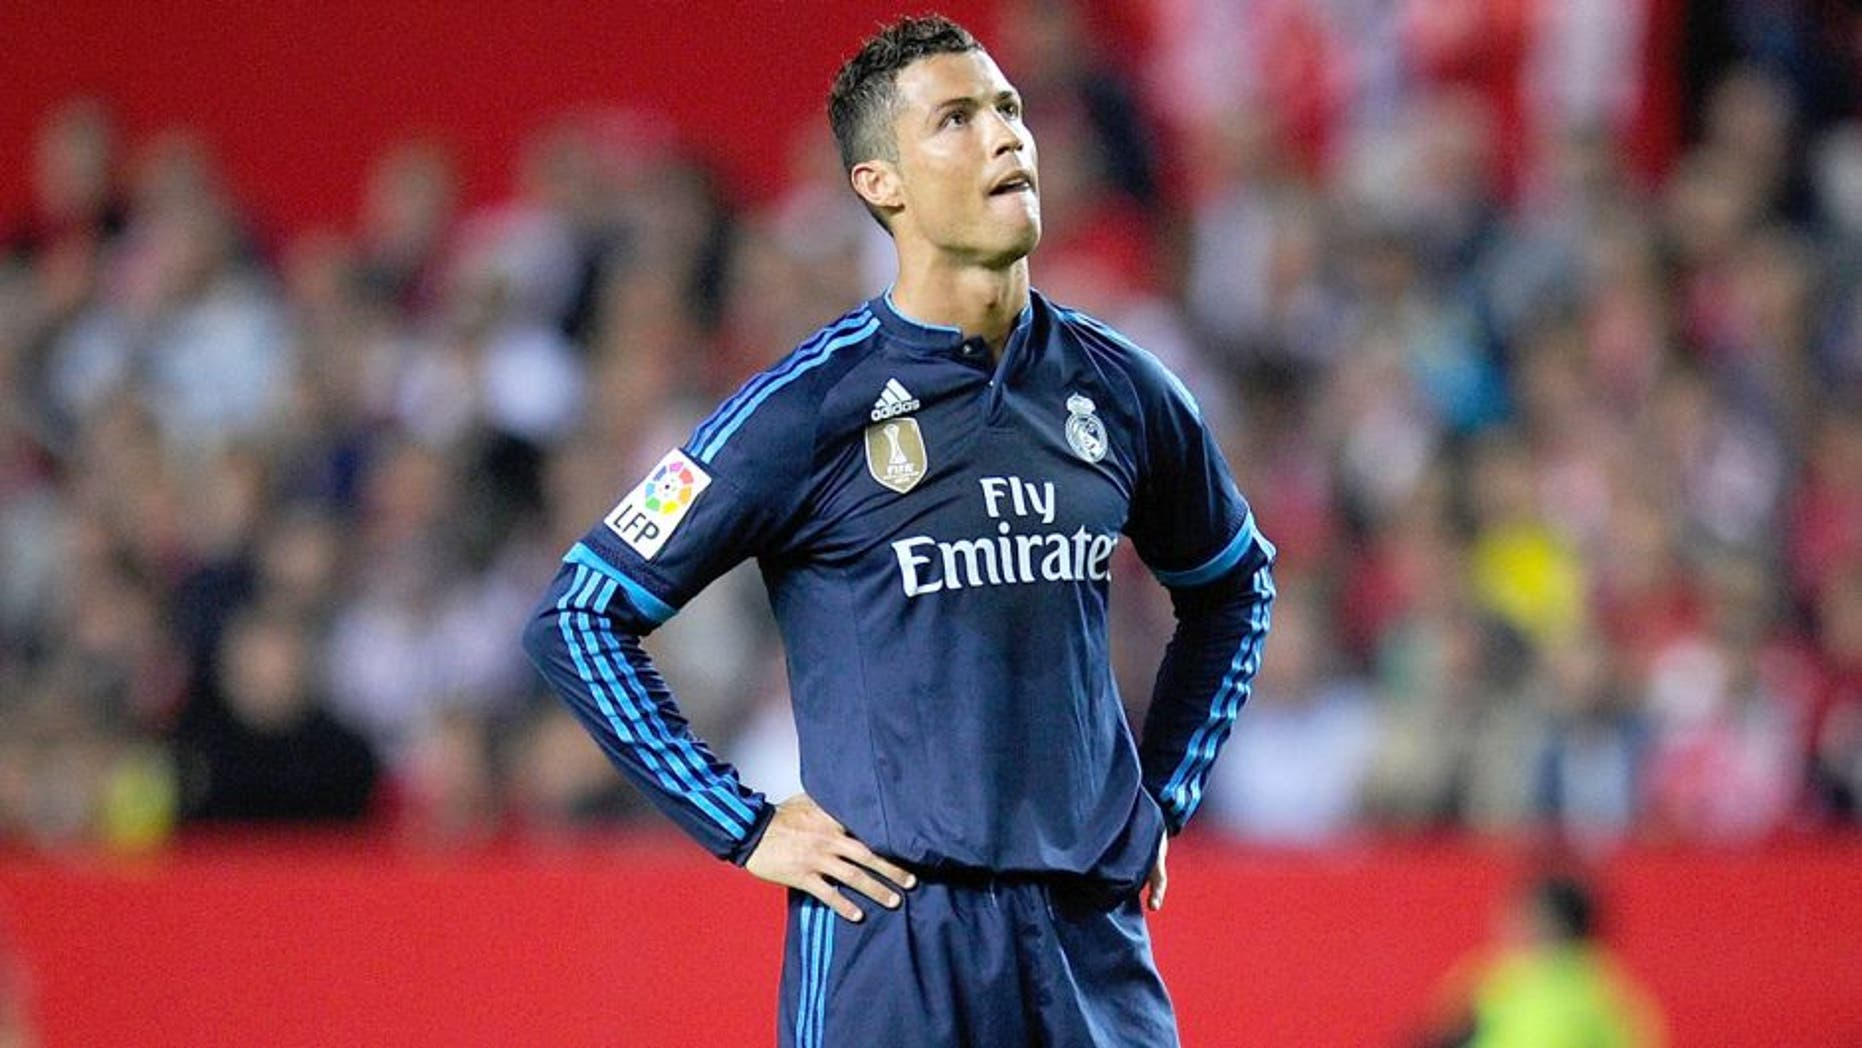 SEVILLE, SPAIN - NOVEMBER 08: Cristiano Ronaldo of Real Madrid reacts during the La Liga match between Sevilla FC and Real Madrid CF at Estadio Ramon Sanchez Pizjuan on November 8, 2015 in Seville, Spain. (Photo by Denis Doyle/Getty Images)